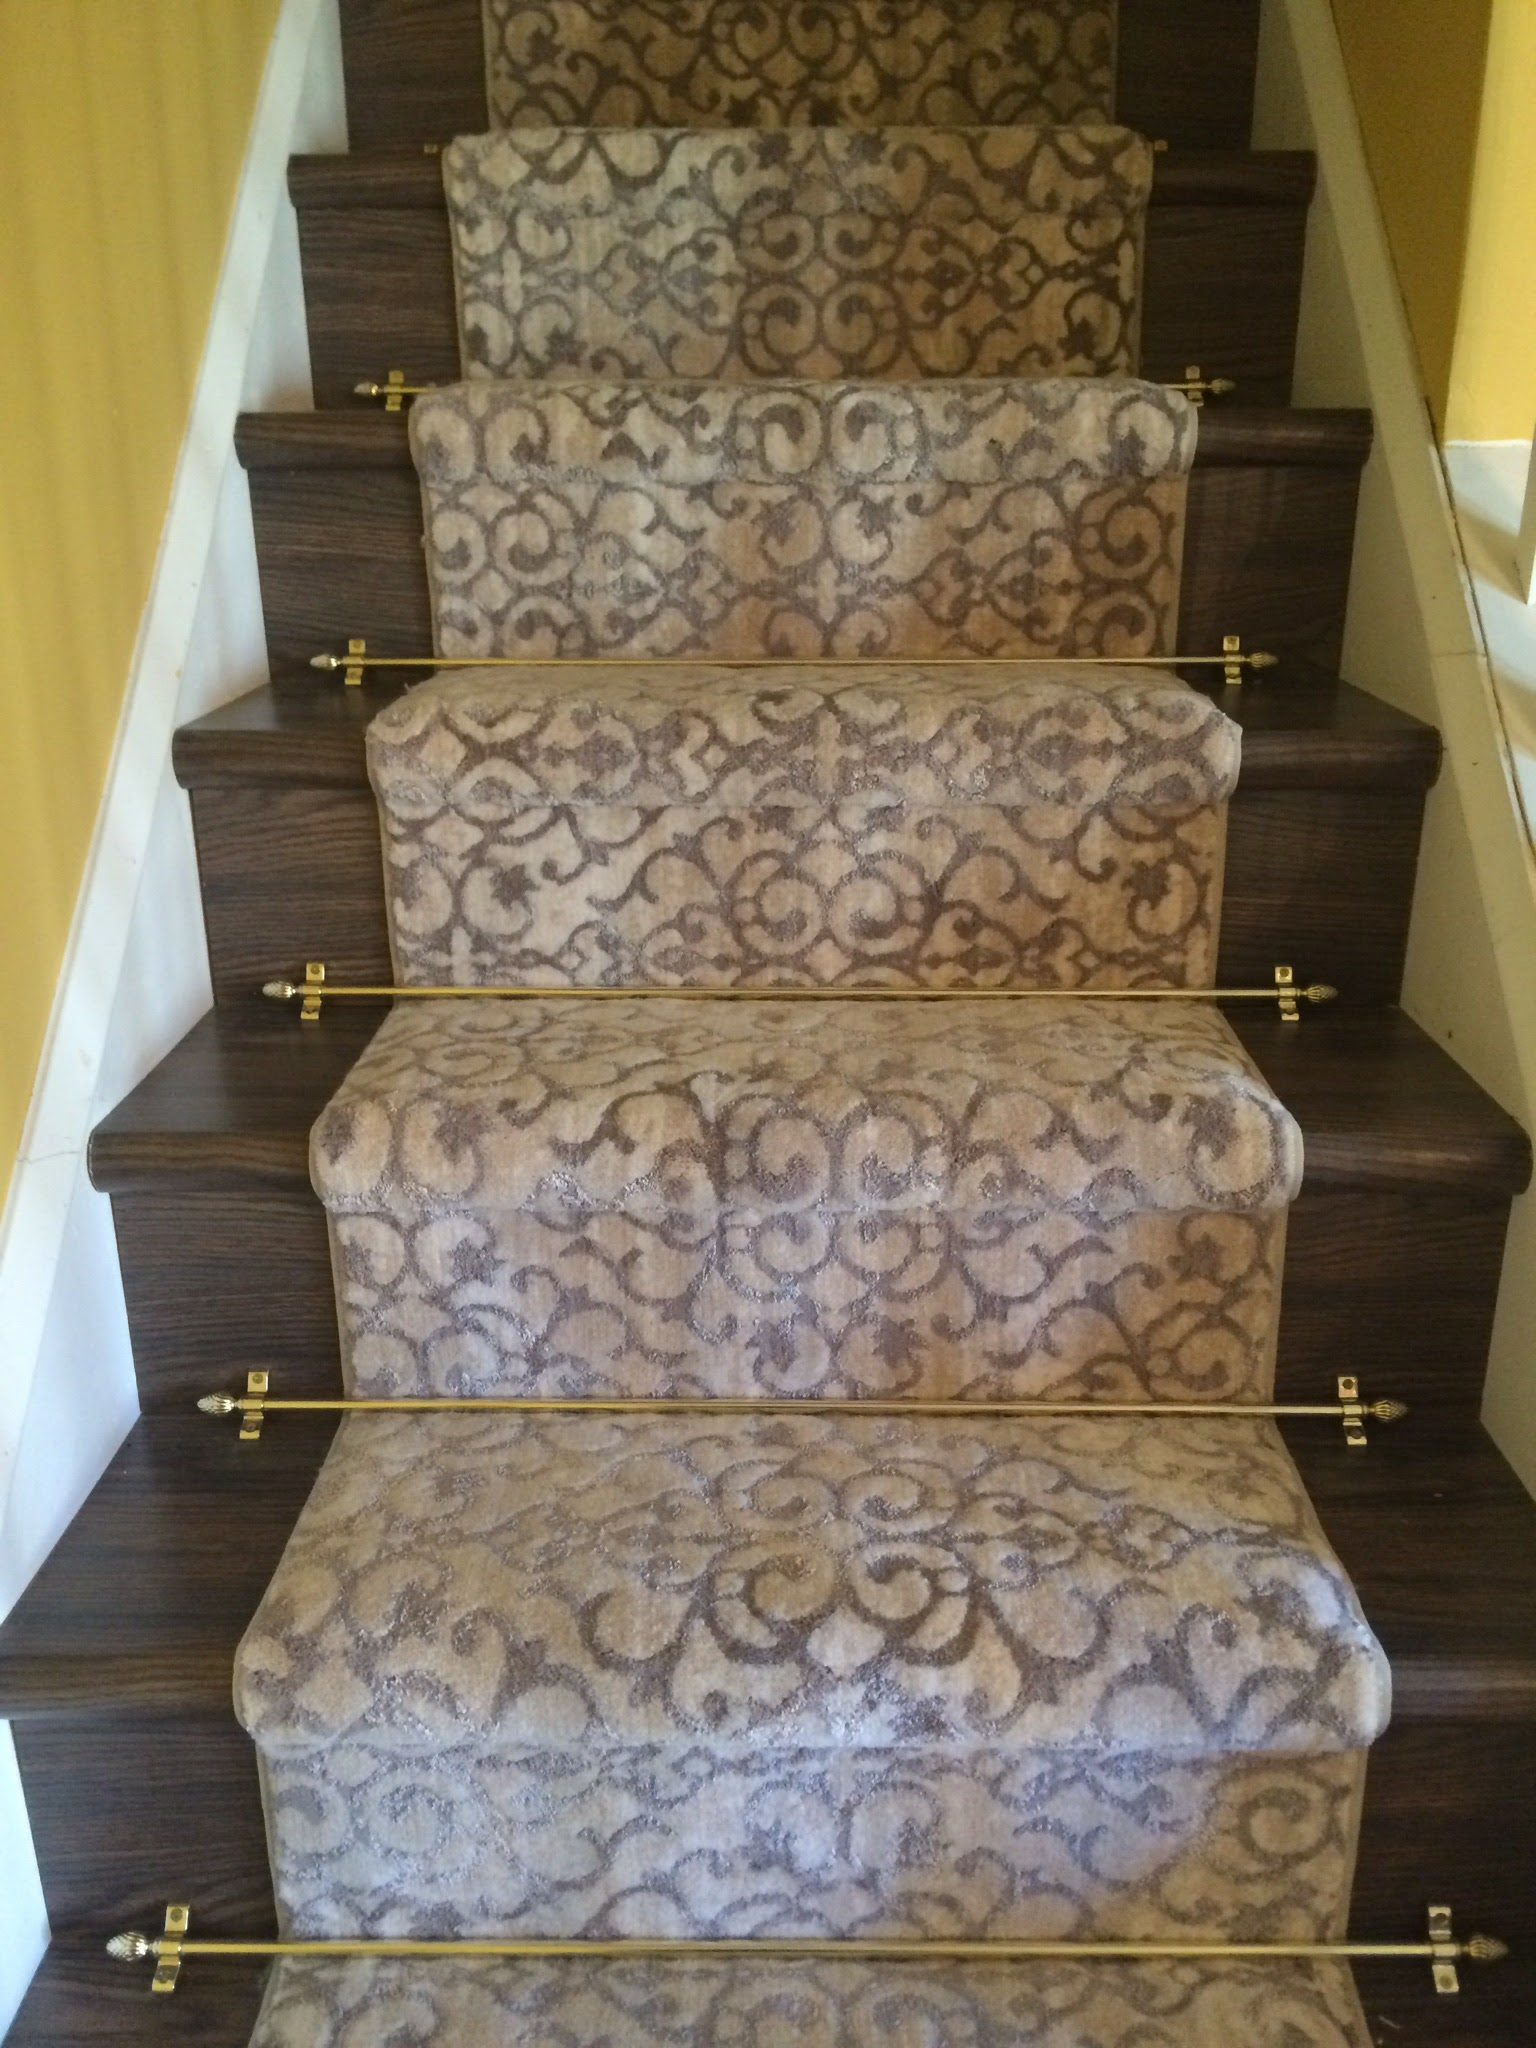 Bound wool blend woven carpet on steps with stair rods